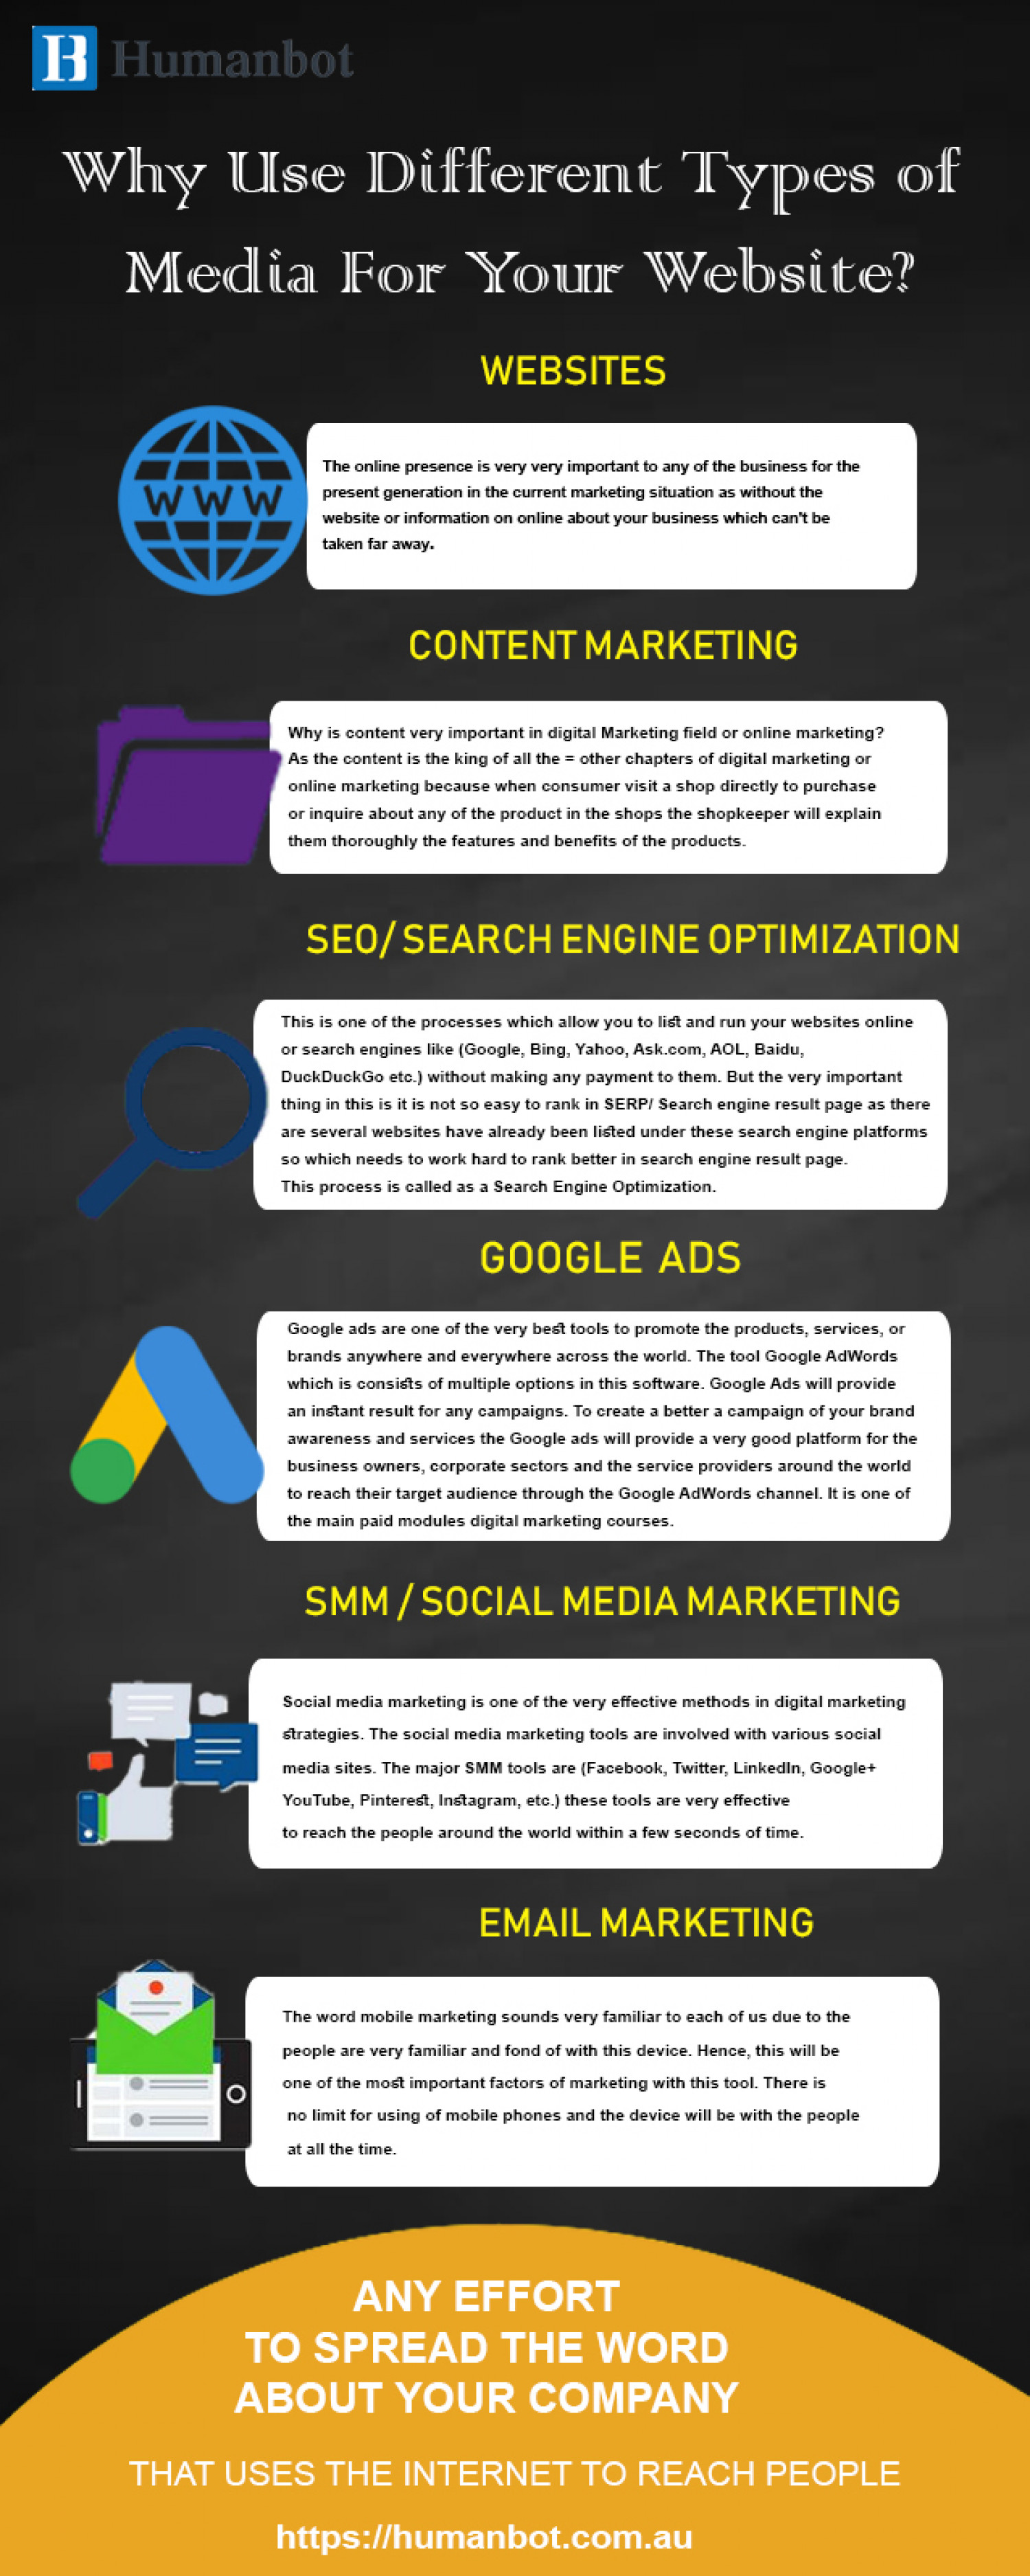 Fascinating digital marketing tactics that can help your business grow Infographic